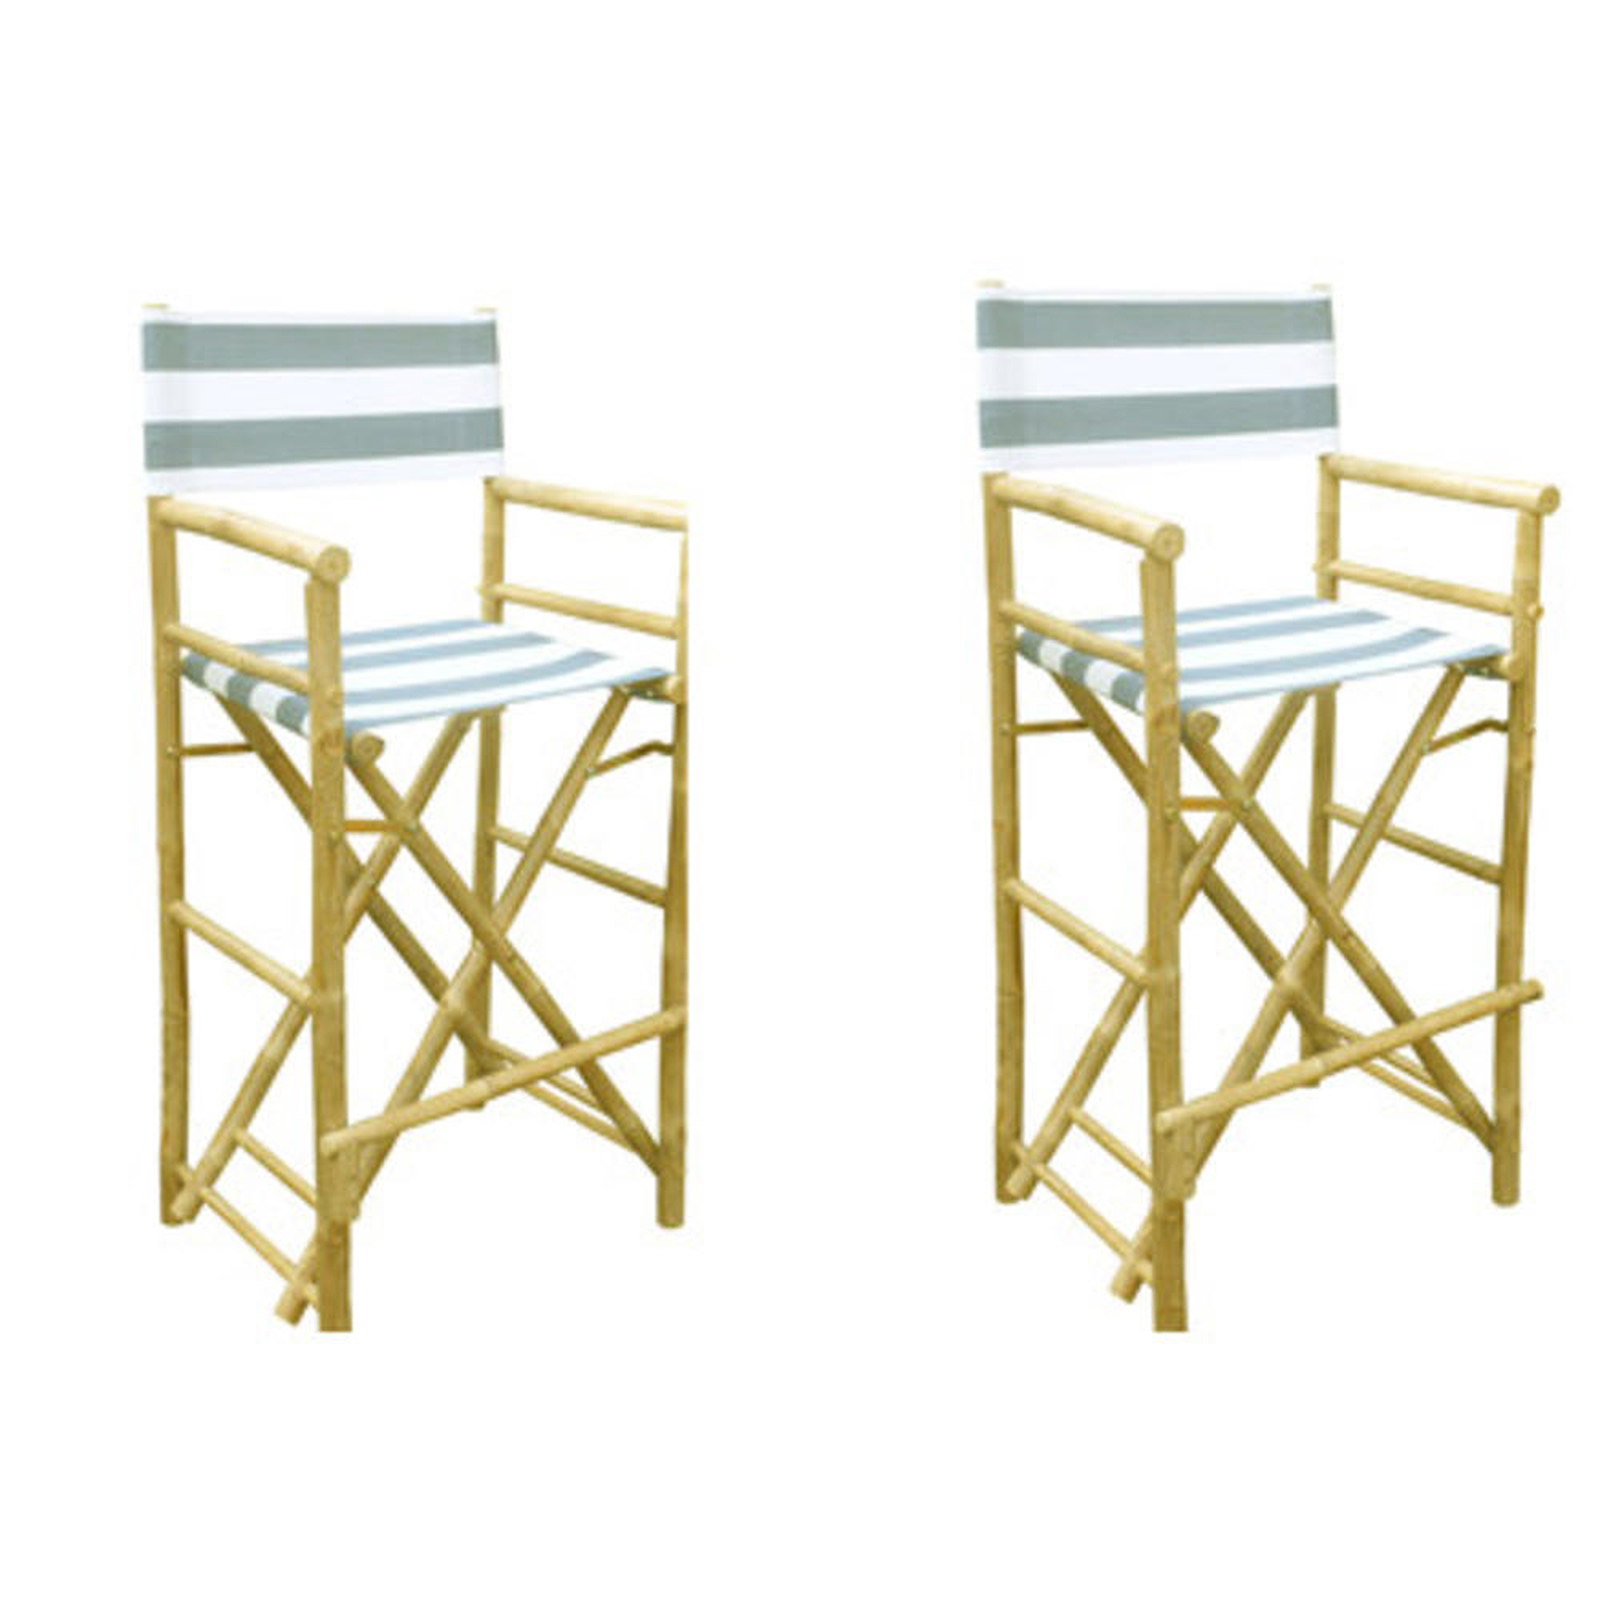 striped directors chairs dining chair slip cover covers buyers choice phat tommy foldable tall in blue stripe set of 2